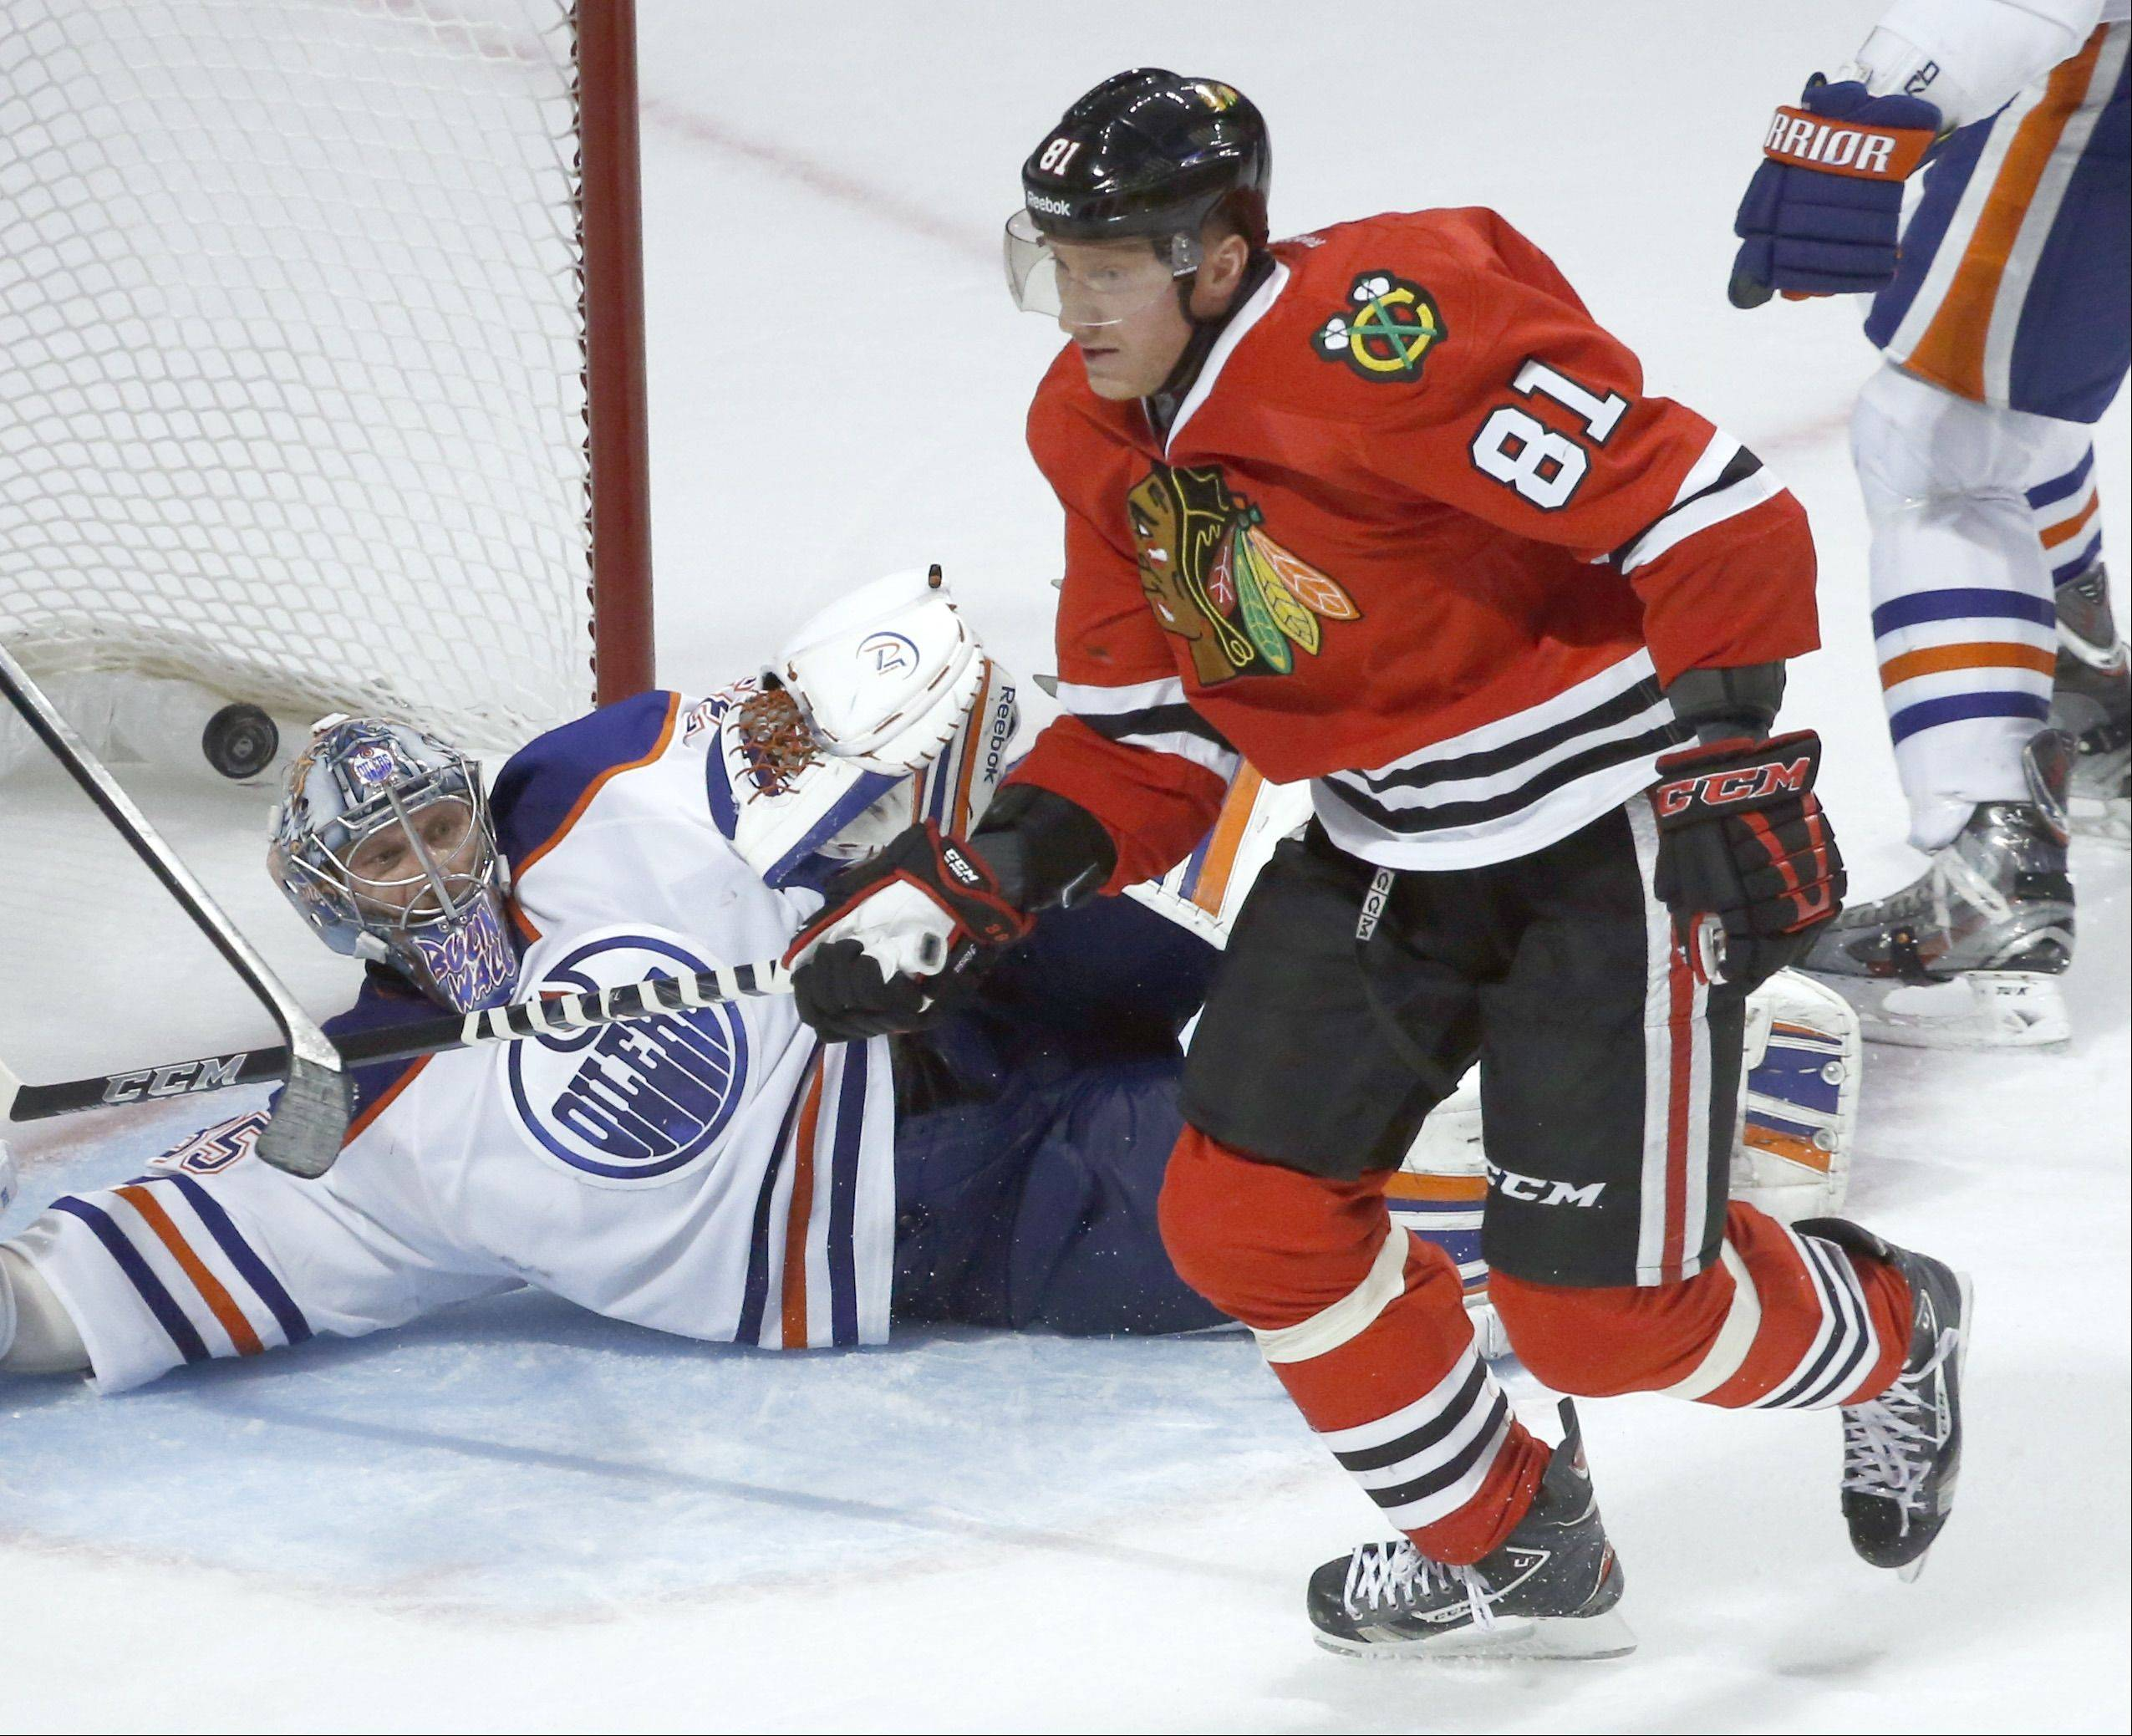 The Blackhawks' Marian Hossa begins to celebrate after scoring the winning goal past Oilers goalie Nikolai Khabibulin during the overtime period Monday night at the United Center.